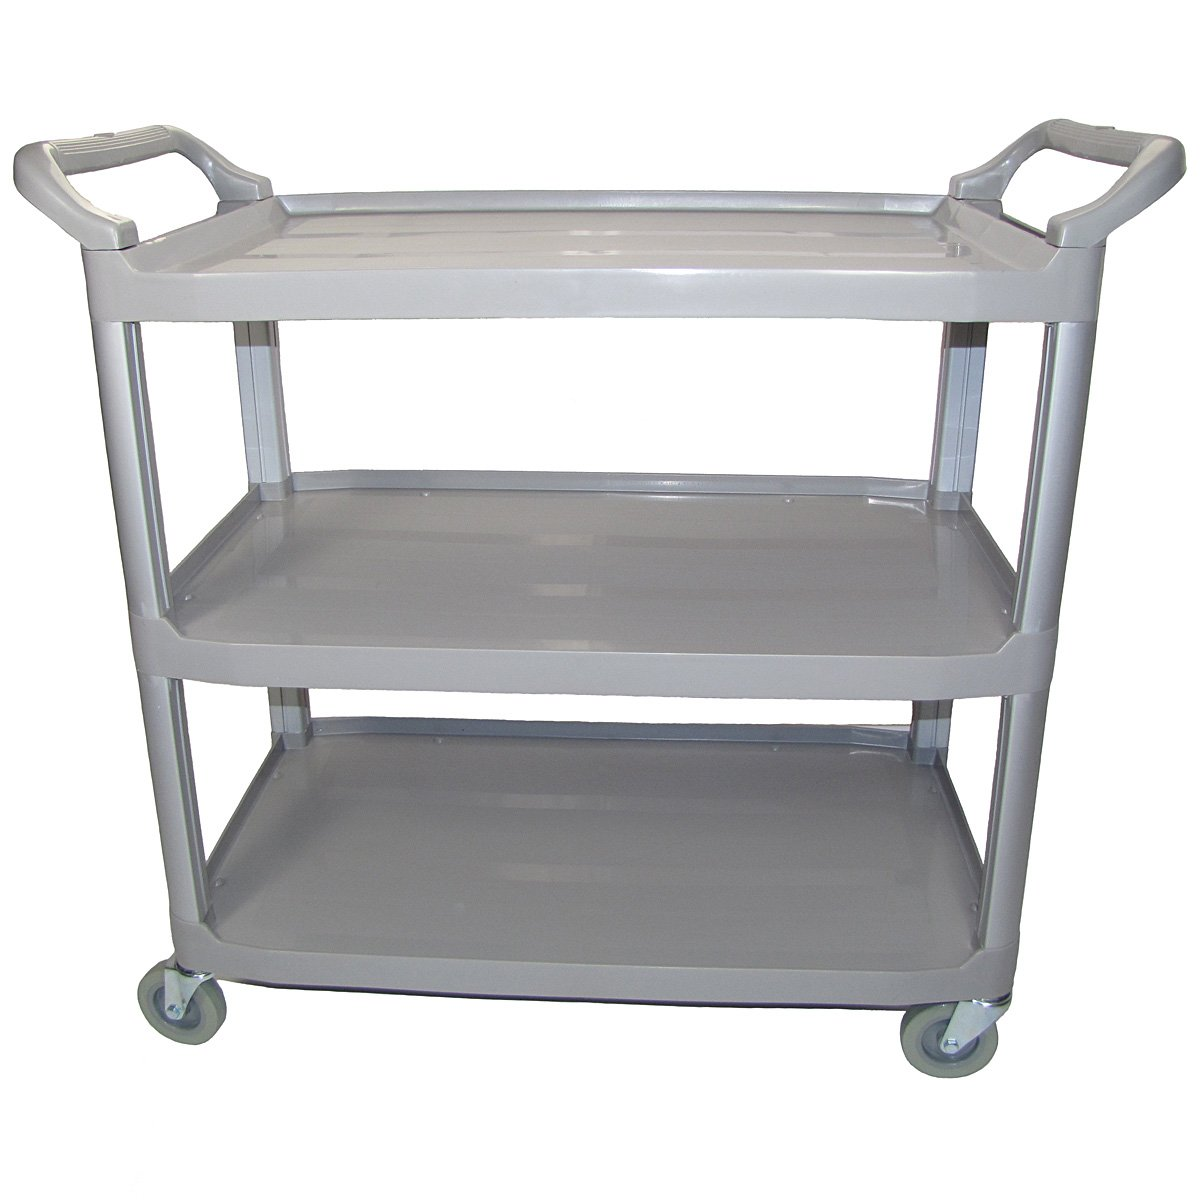 Crayata Serving and Bus Cart, Kitchen Food Service Utility Cart, 3 Tier Heavy Duty Plastic Beverage and Coffee Transport Cart for Restaurants, Gray by Crayata (Image #4)